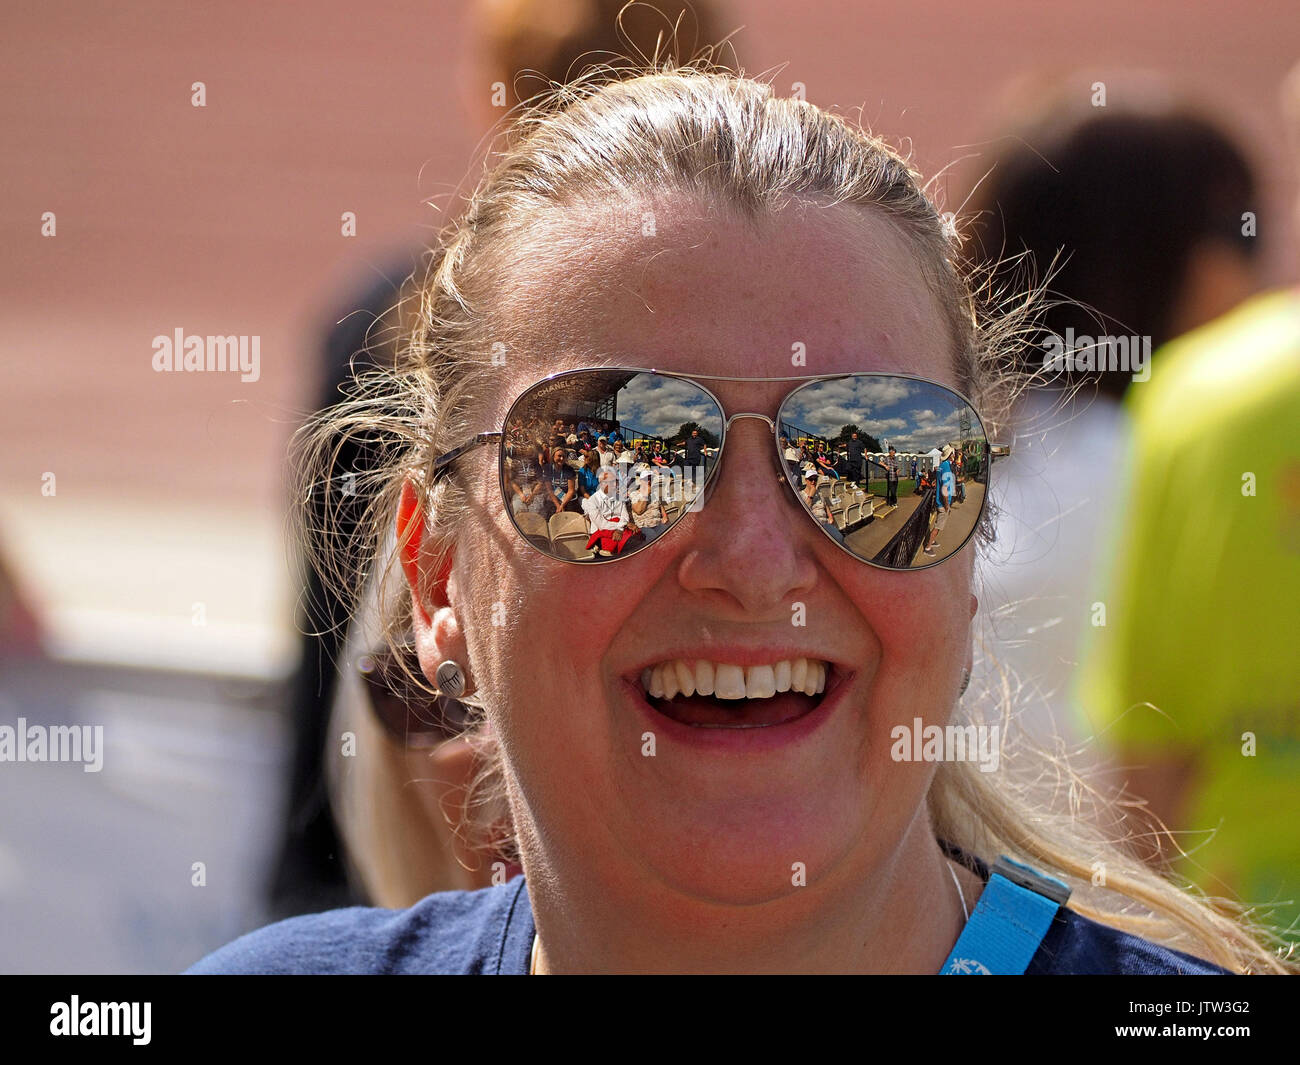 Sheffield, UK. 10th August, 2017. Spectators refelected in sunglasses of one supporter at Special Olympics National - Stock Image